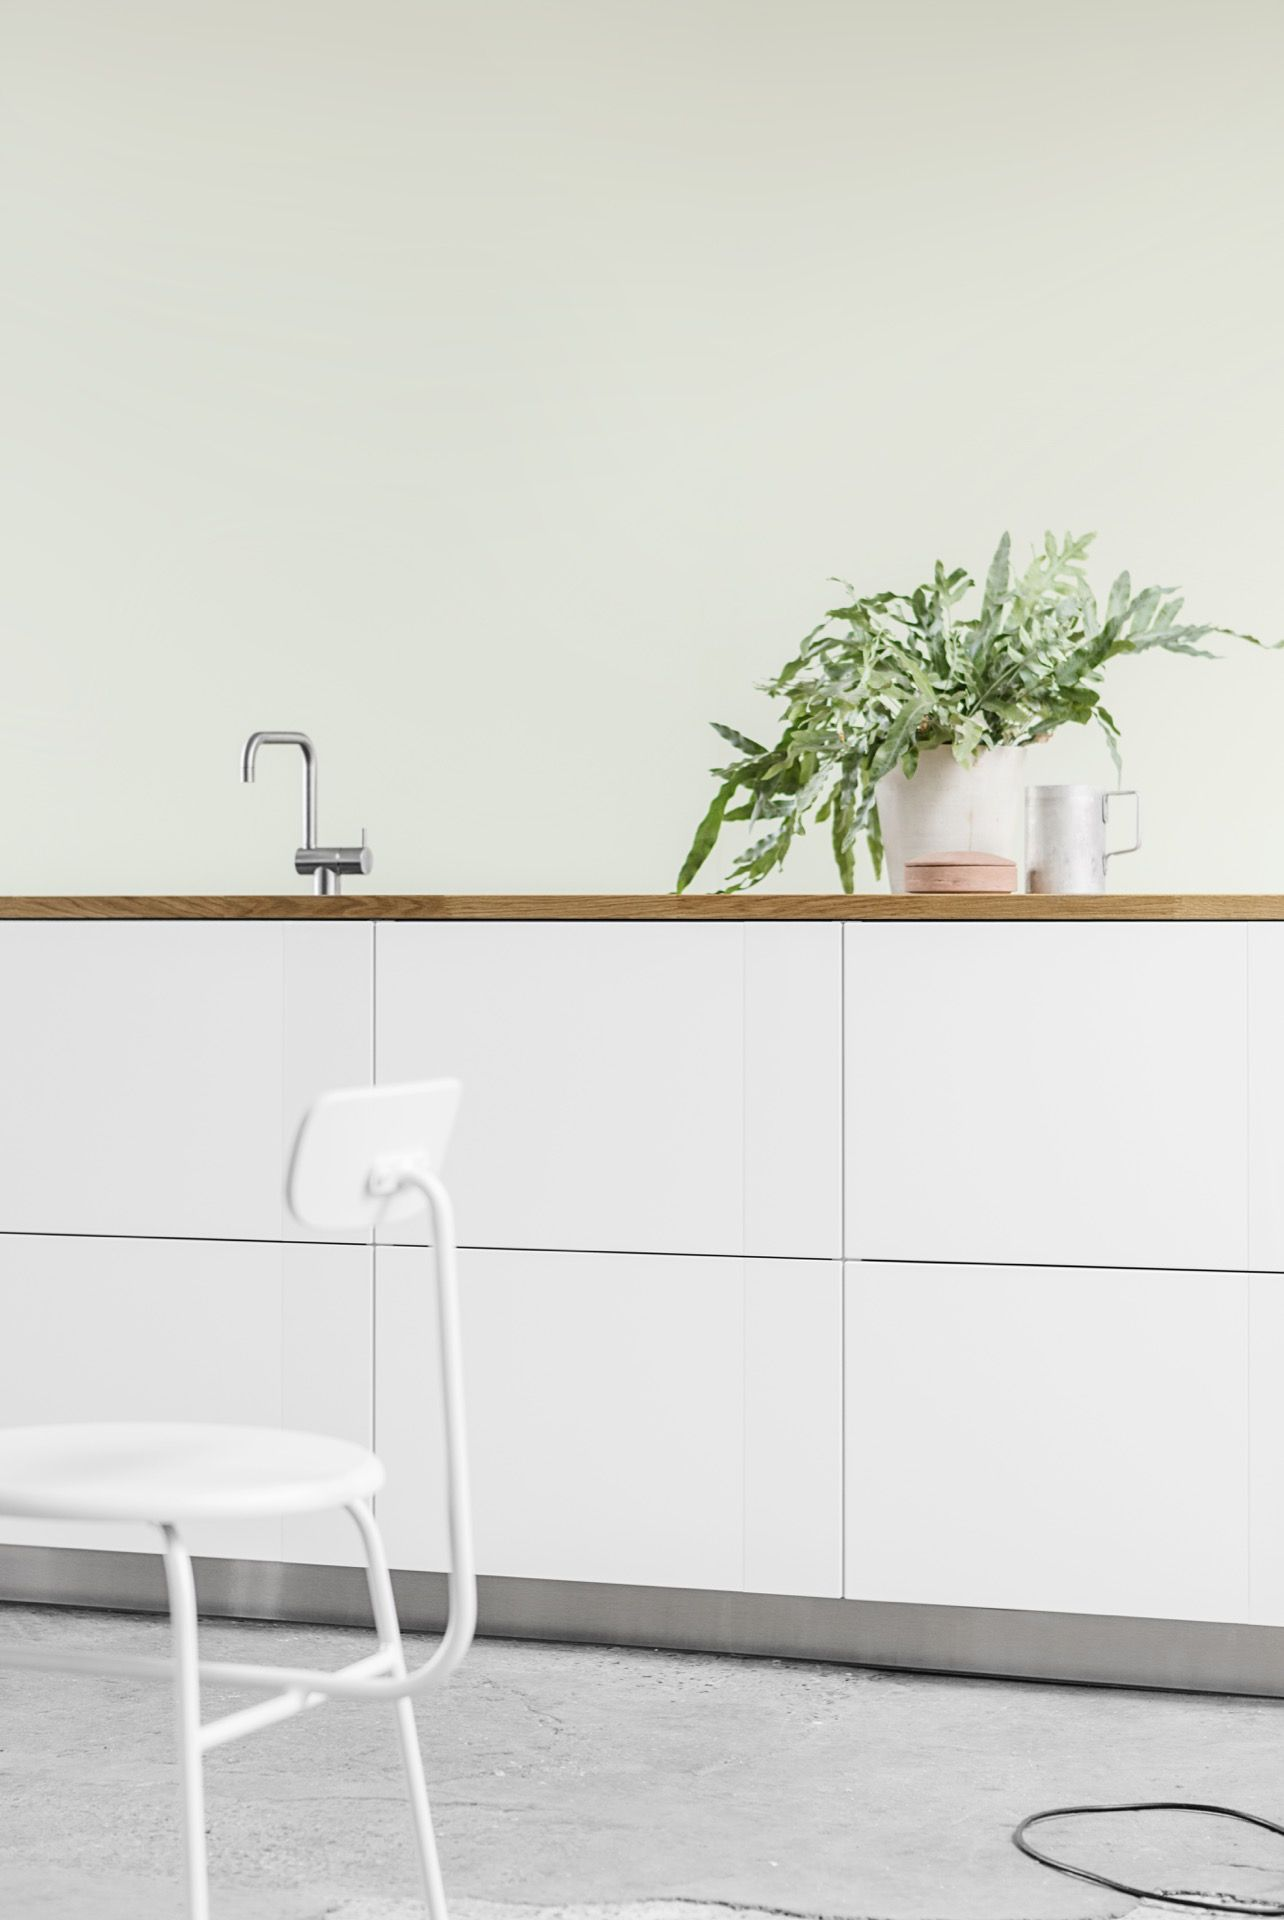 Küche Ikea Reform Reform Ikea Fronts Product Highlight K I T C H E N